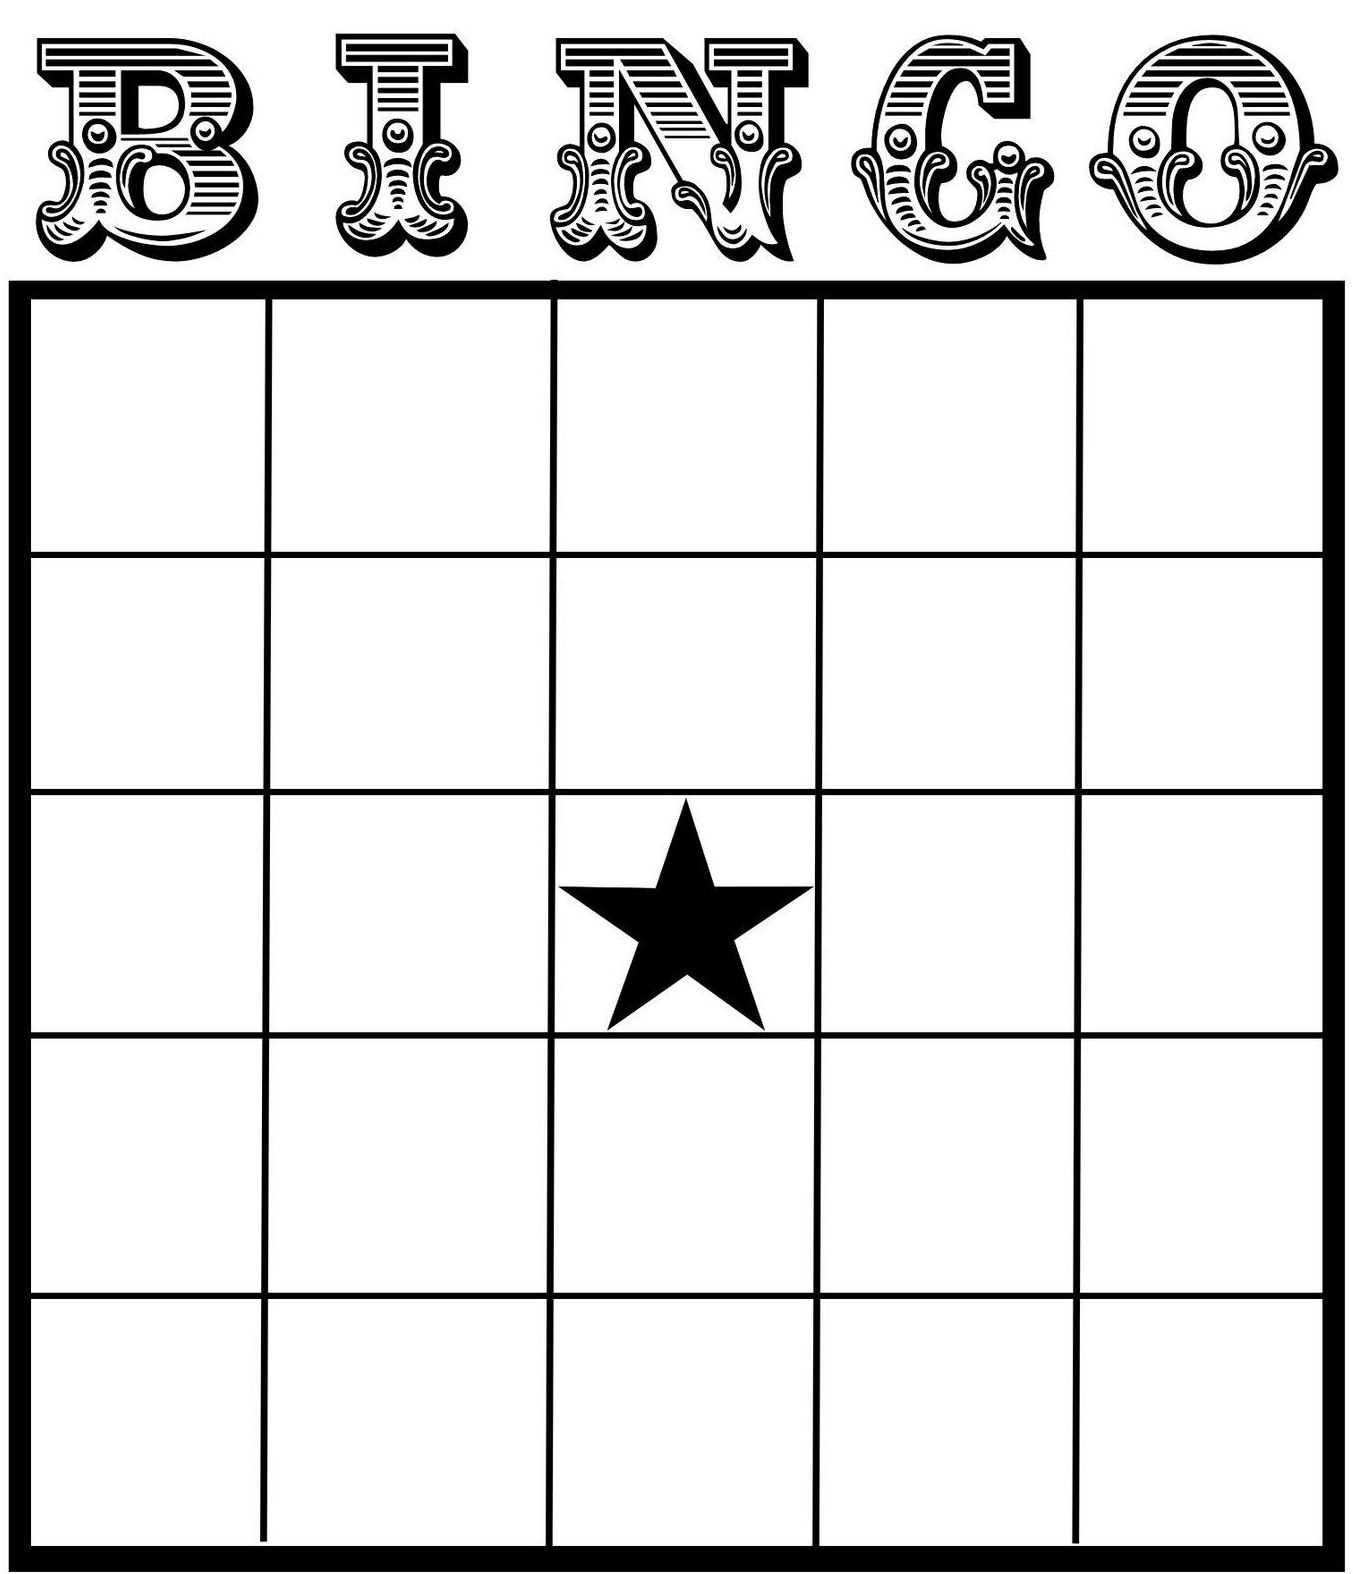 Free Printable Bingo Card Template - Set Your Plan & Tasks With Blank Bingo Card Template Microsoft Word